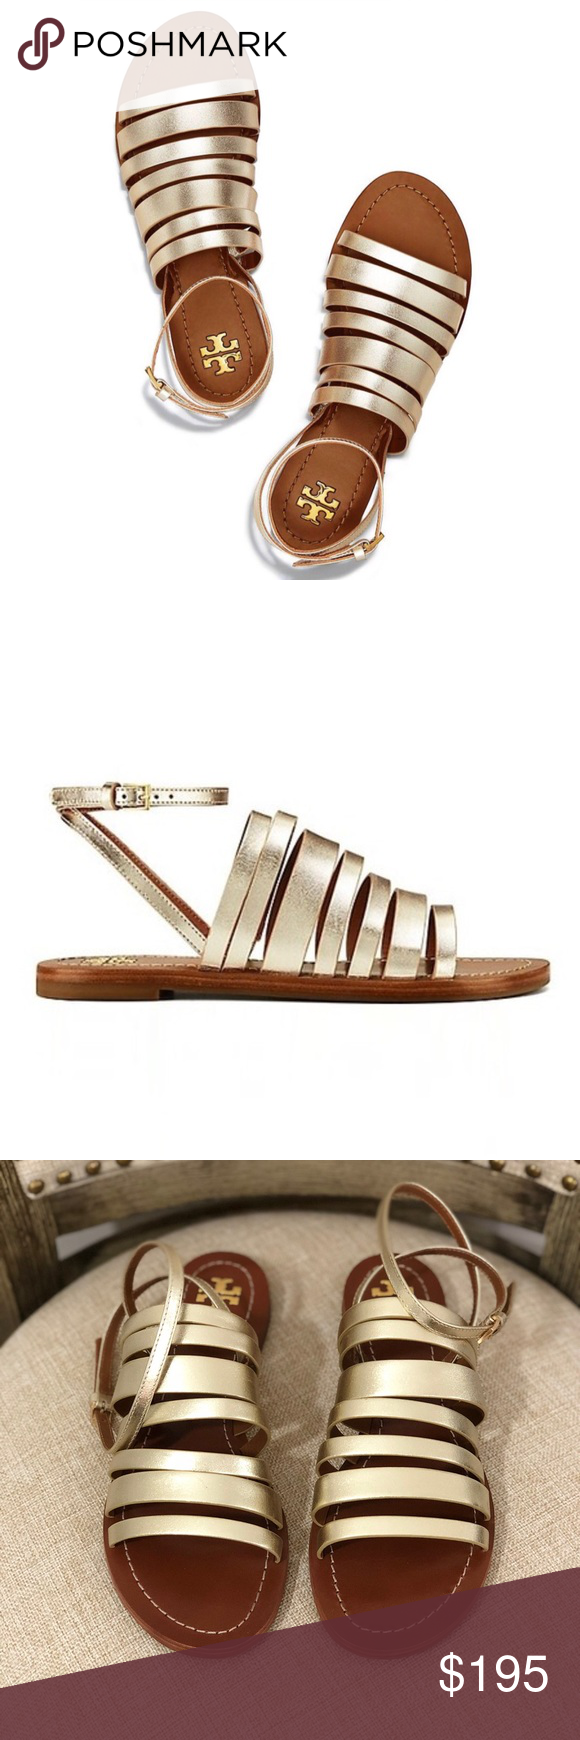 9dd889e61a5 Tory Burch Patos Ankle Strap Gladiator Sandal Gold - Brand  Tory Burch -  Style  Patos Ankle Strap Gladiator Sandals - Condition  Excellent used  condition ...